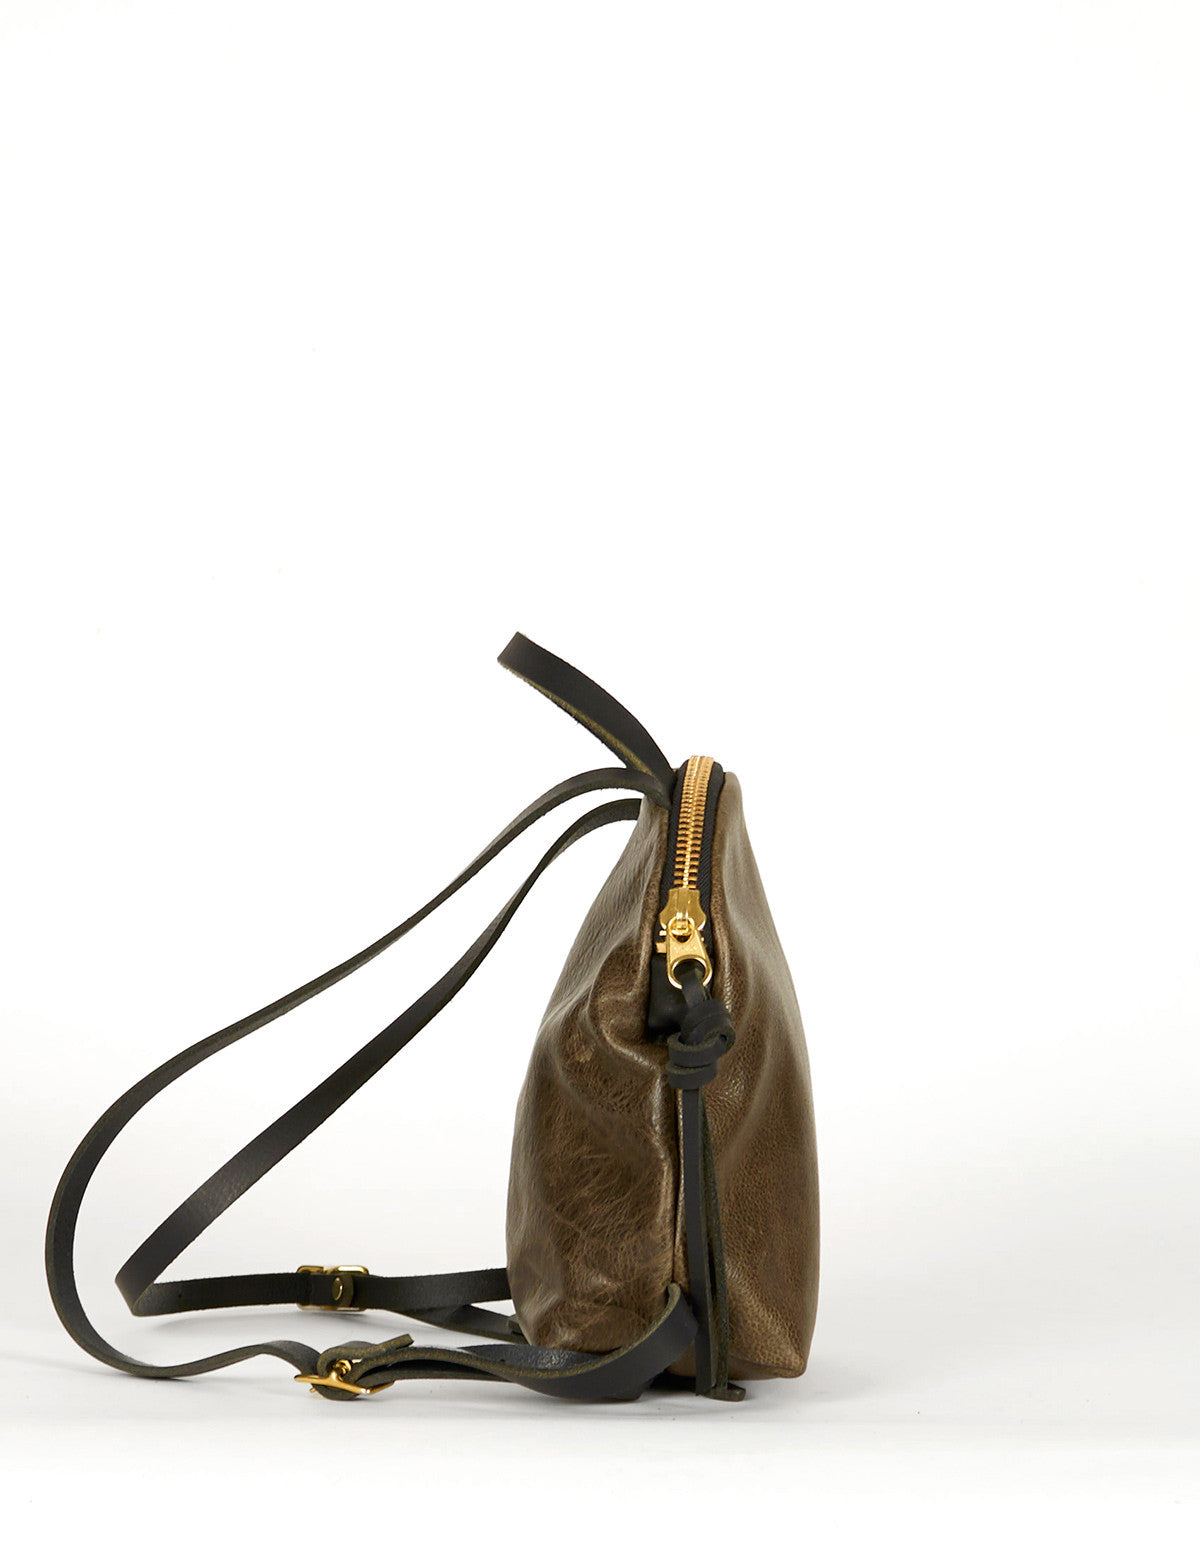 Eleven Thirty Anni Mini Backpack Steel - Still Life - 3